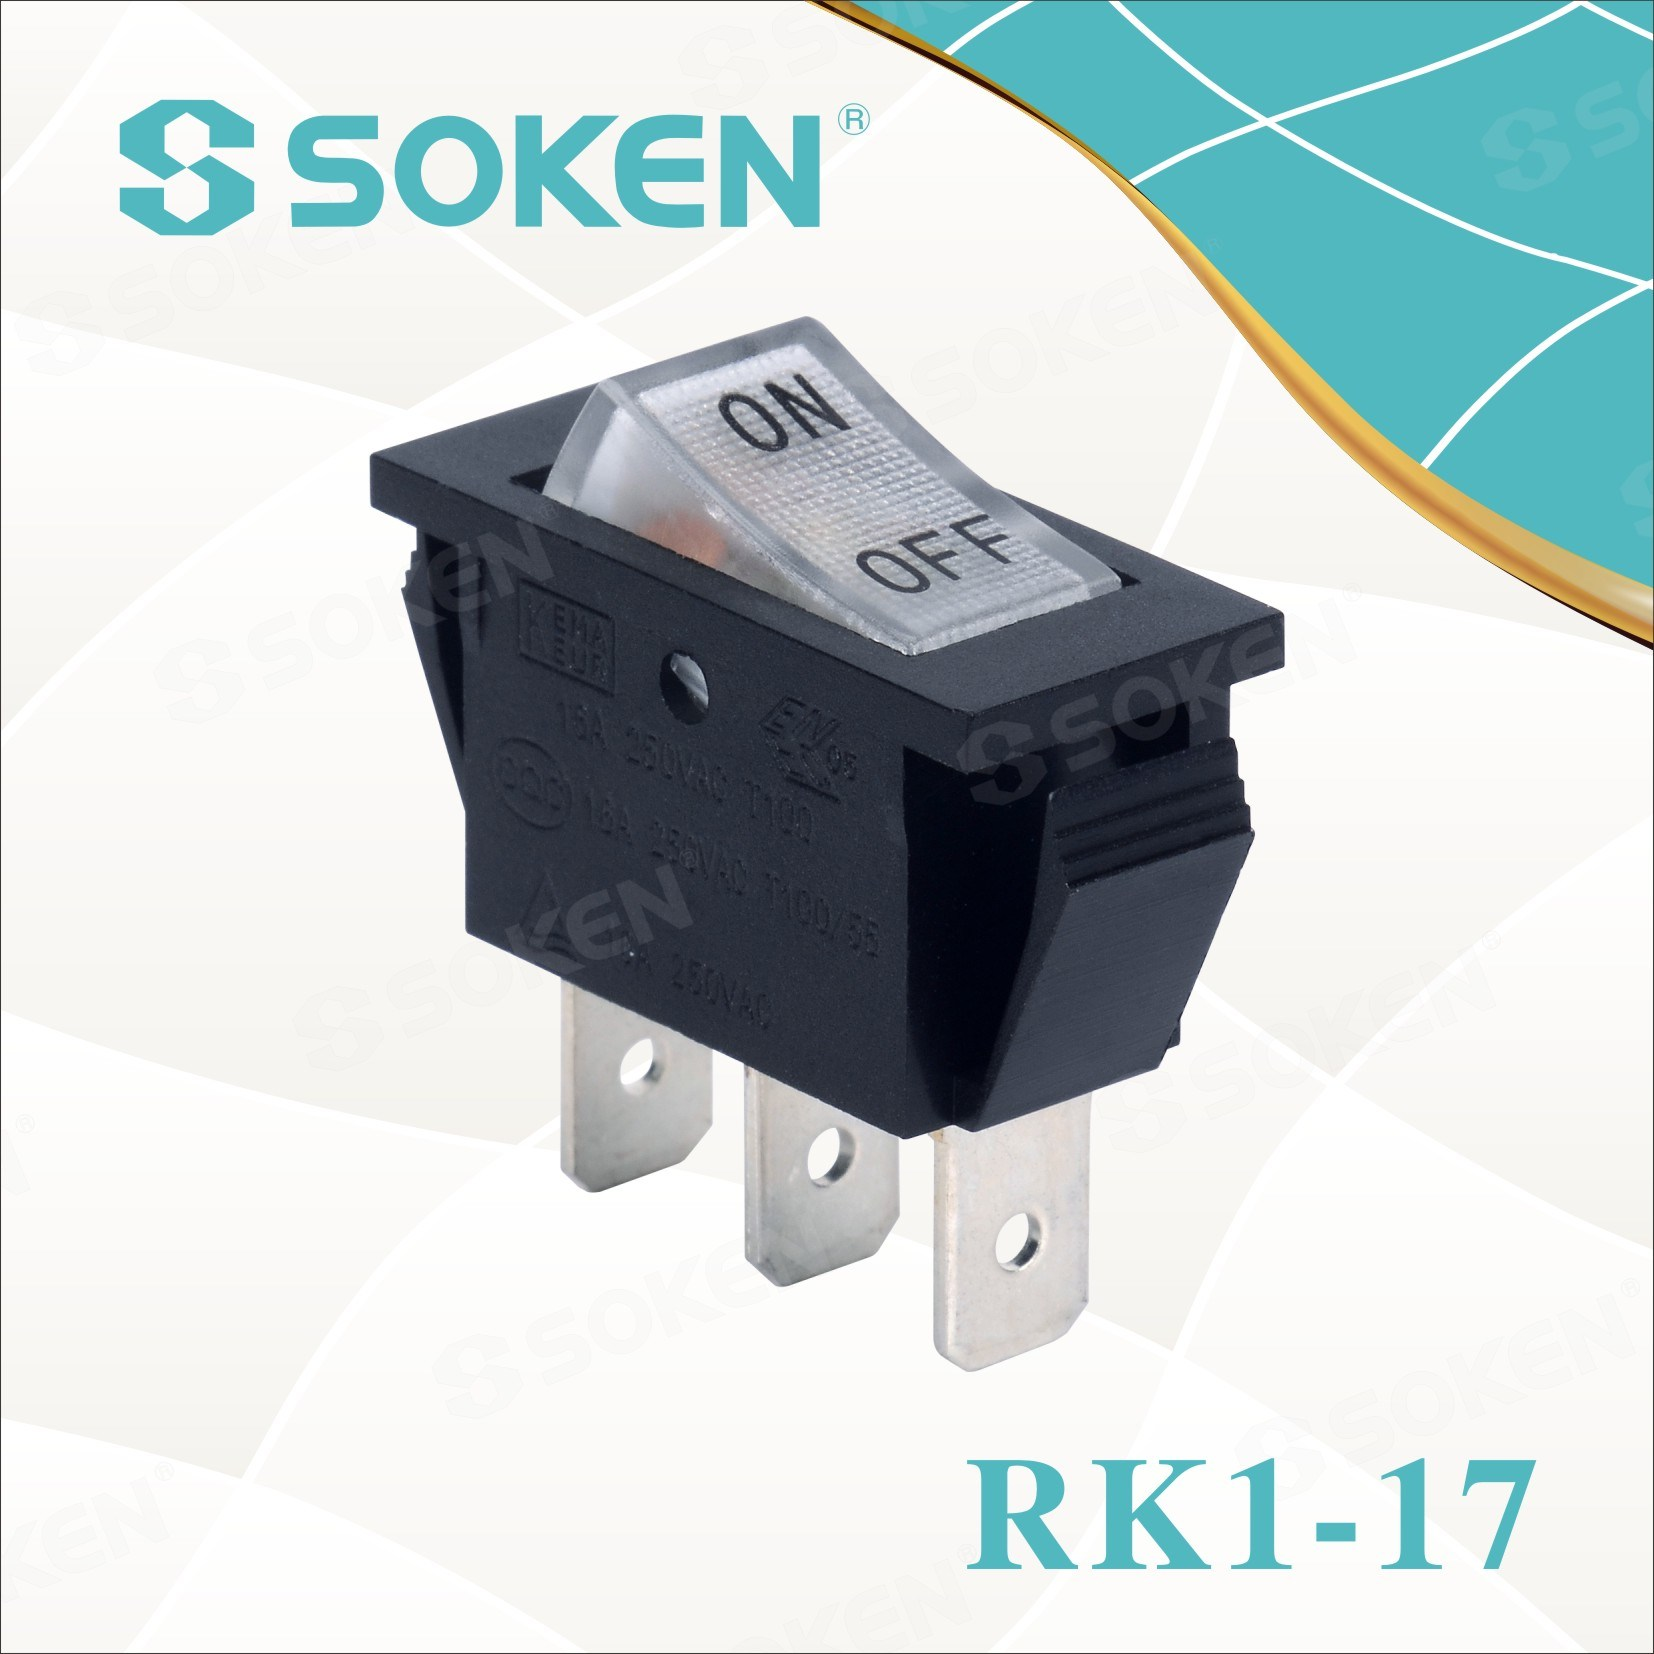 Soken Rk1-17 1X1n on off Iluminado Rocker Switch